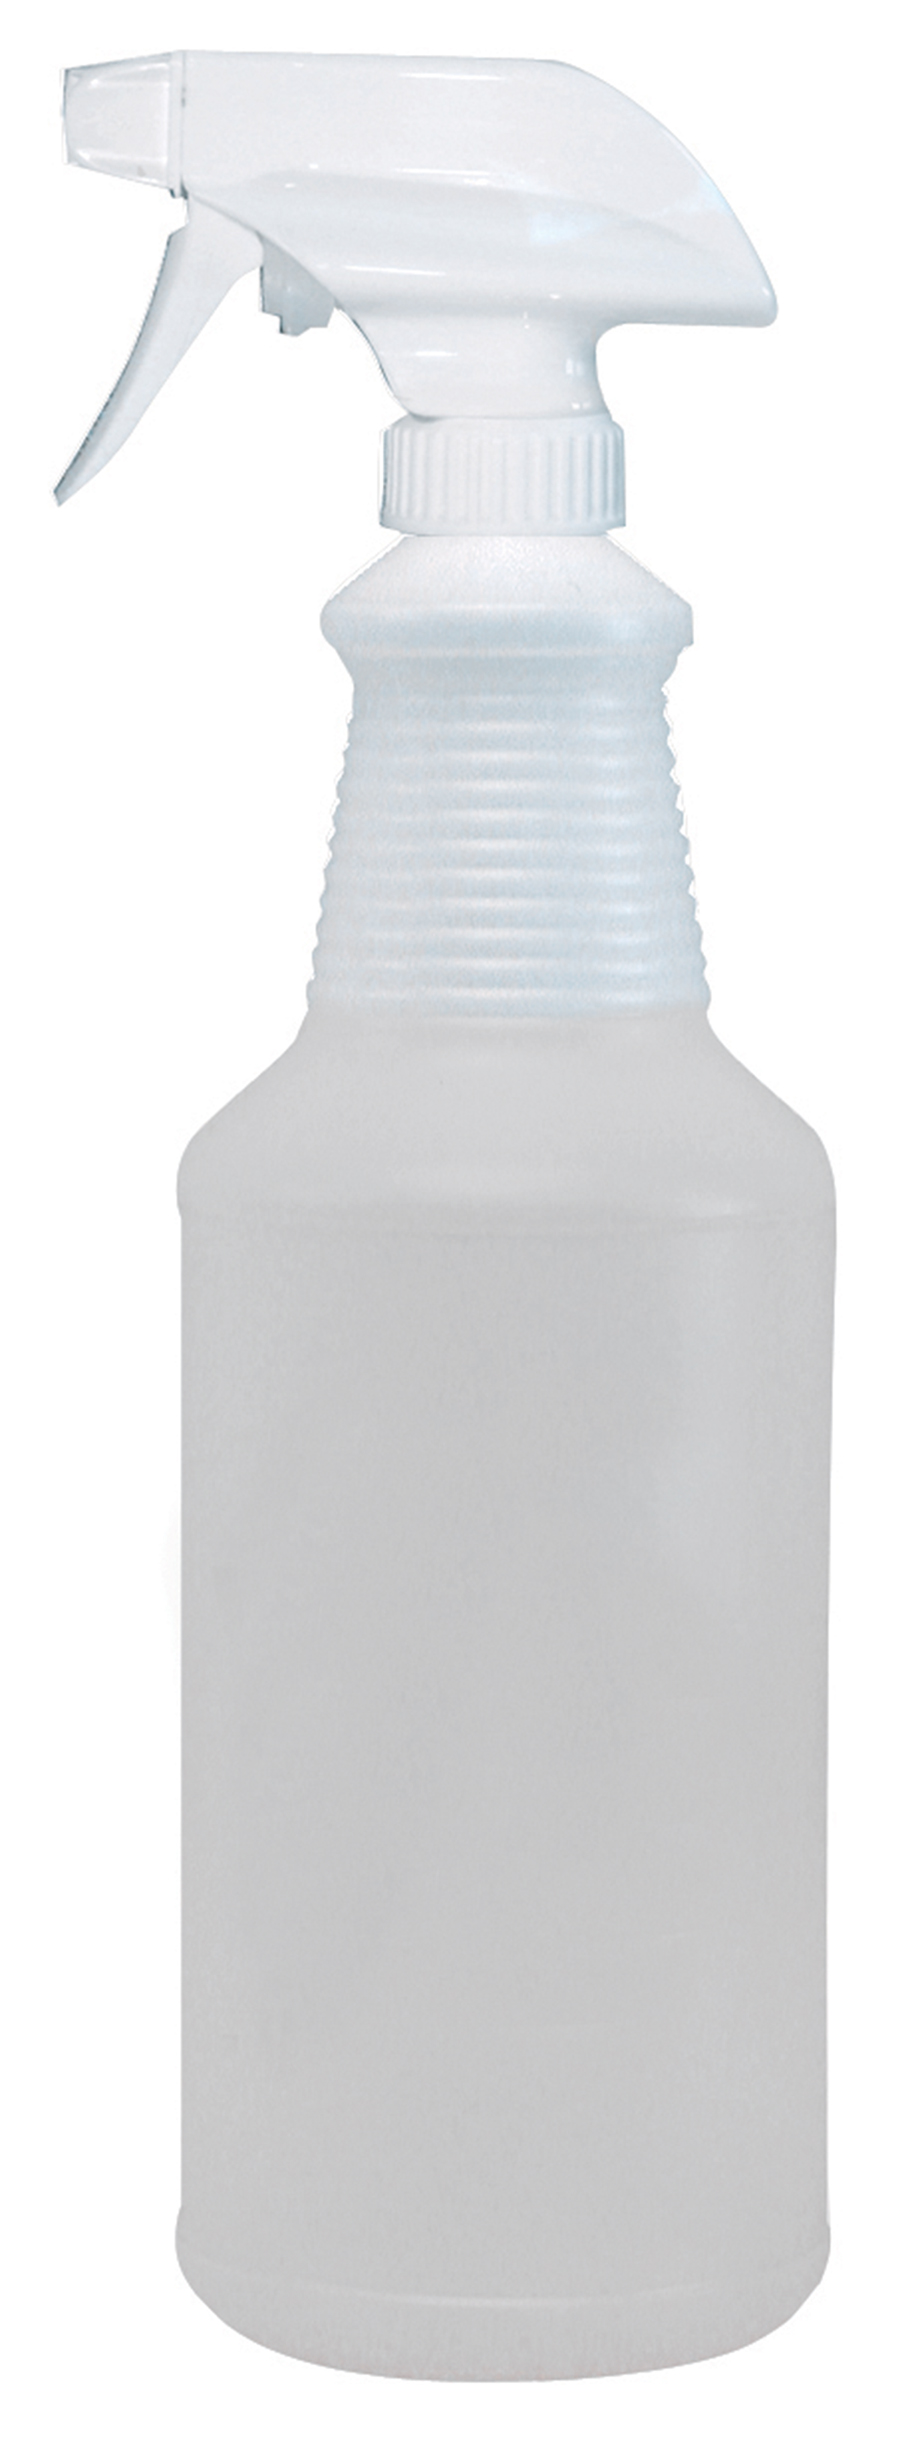 Bottle Spray Glance Glas&Multisrfce 32Oz 12 Ea/Cs